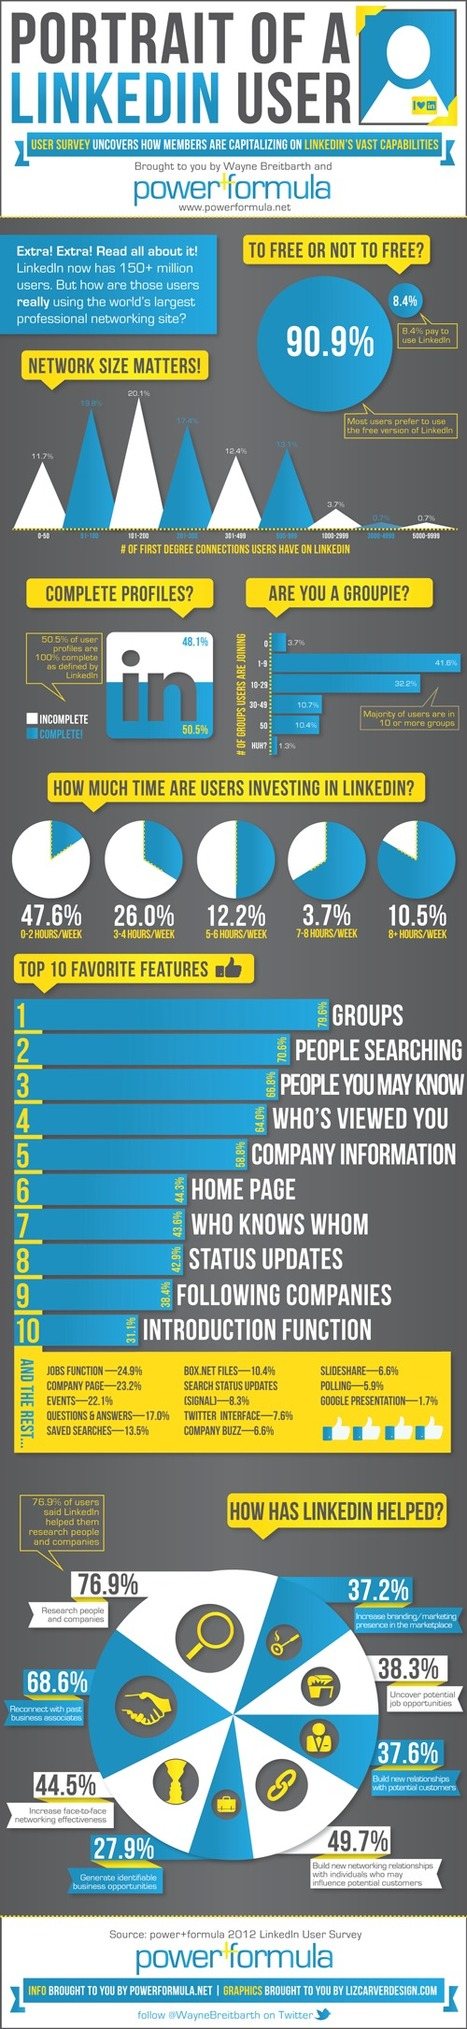 How to Harness the Power of LinkedIn - INFOGRAPHIC | LinkedIn Marketing Strategy | Scoop.it